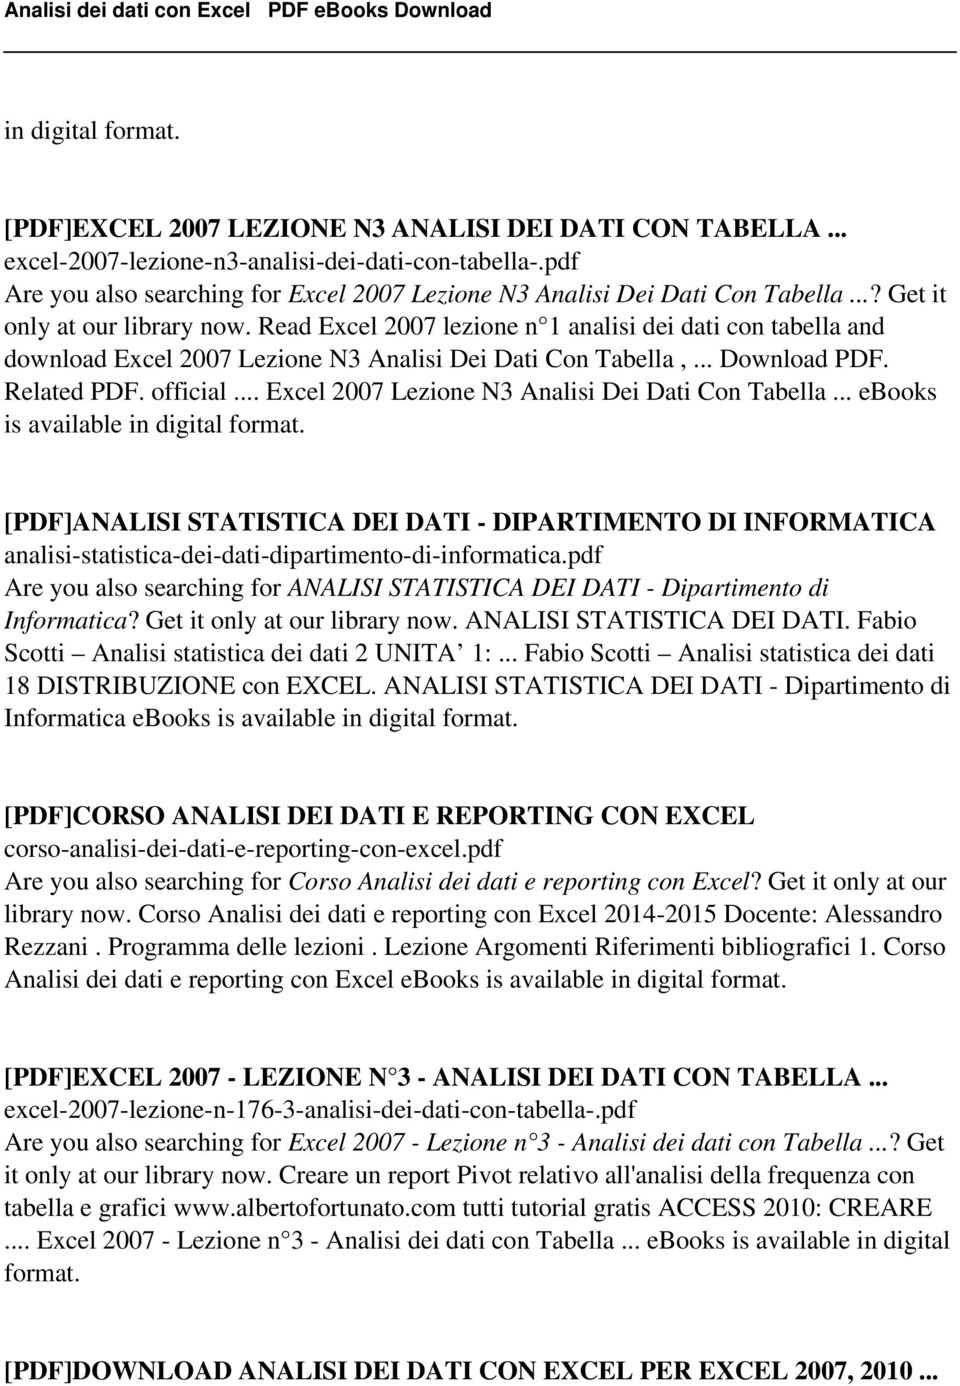 Read Excel 2007 lezione n 1 analisi dei dati con tabella and download Excel 2007 Lezione N3 Analisi Dei Dati Con Tabella,... Download PDF. Related PDF. official.